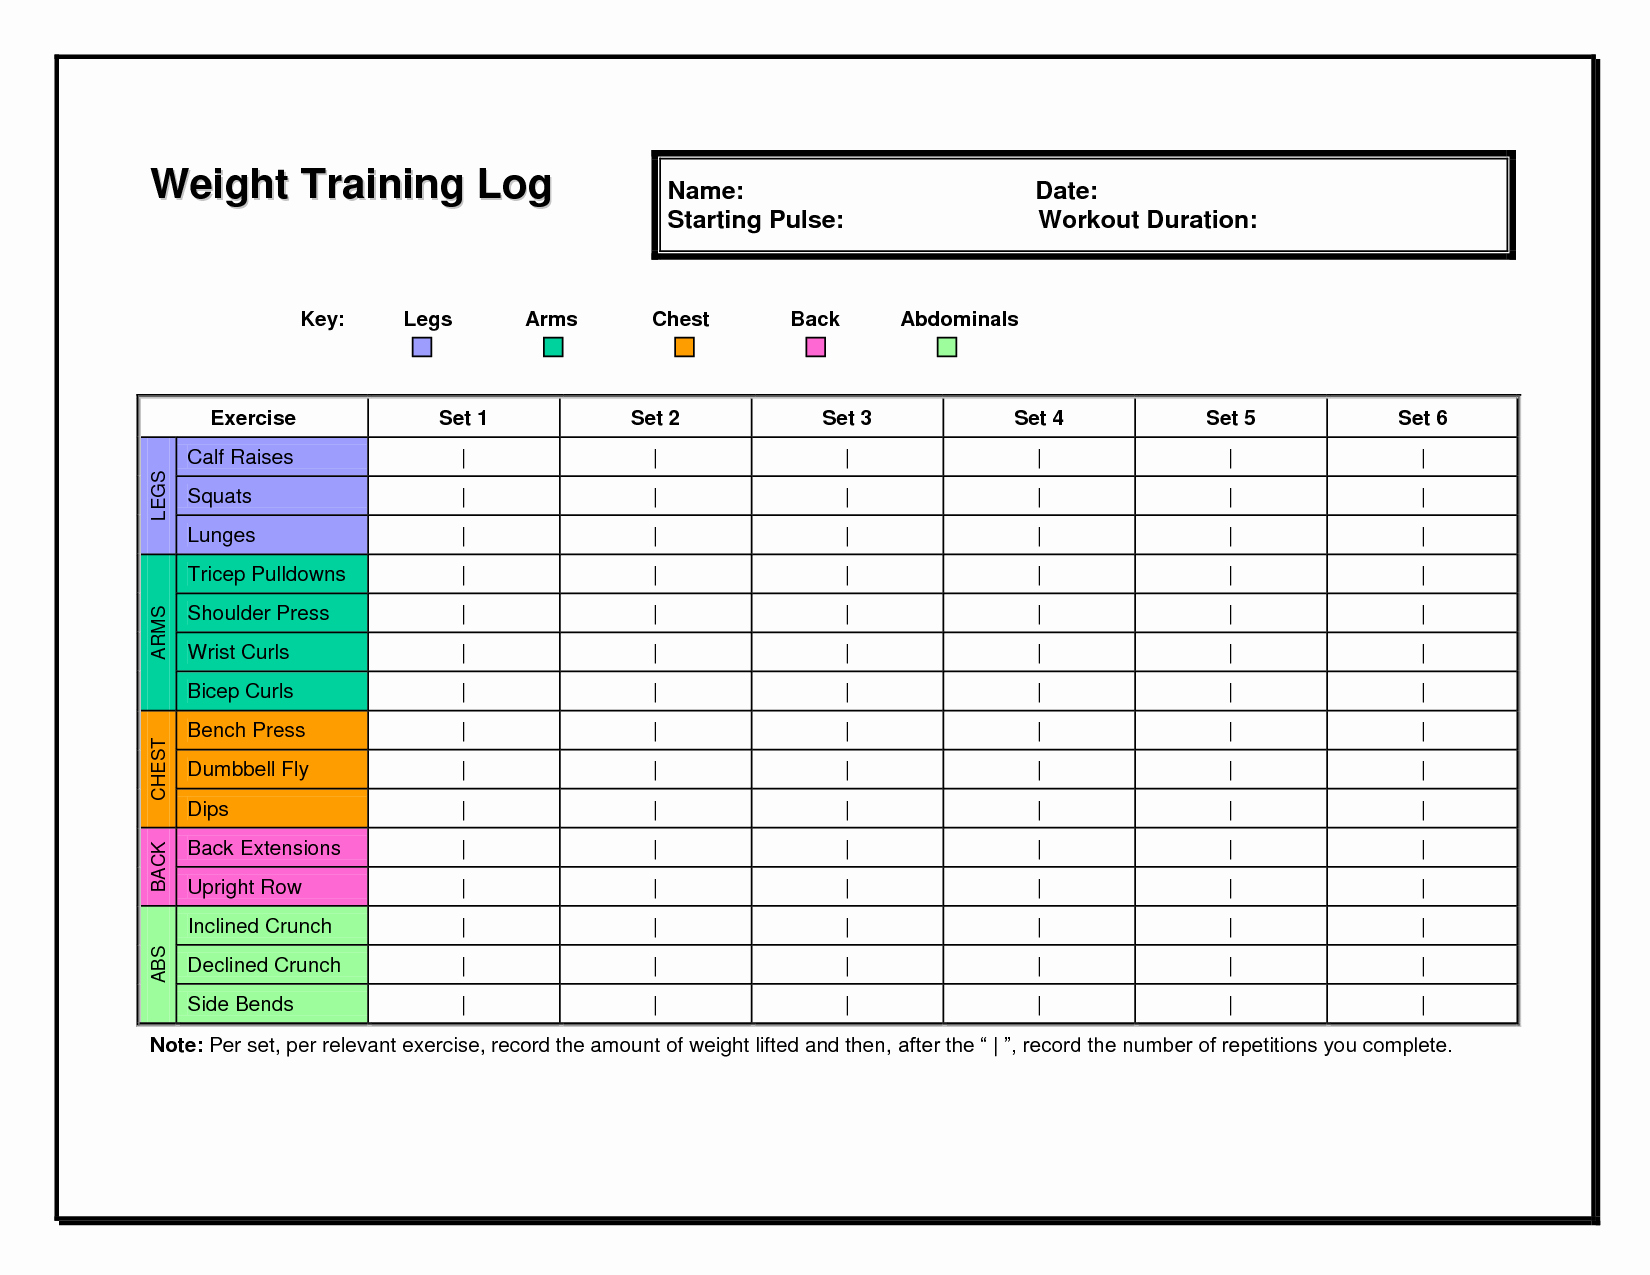 Training Log Template Luxury Workout Log Template Fitness & Health